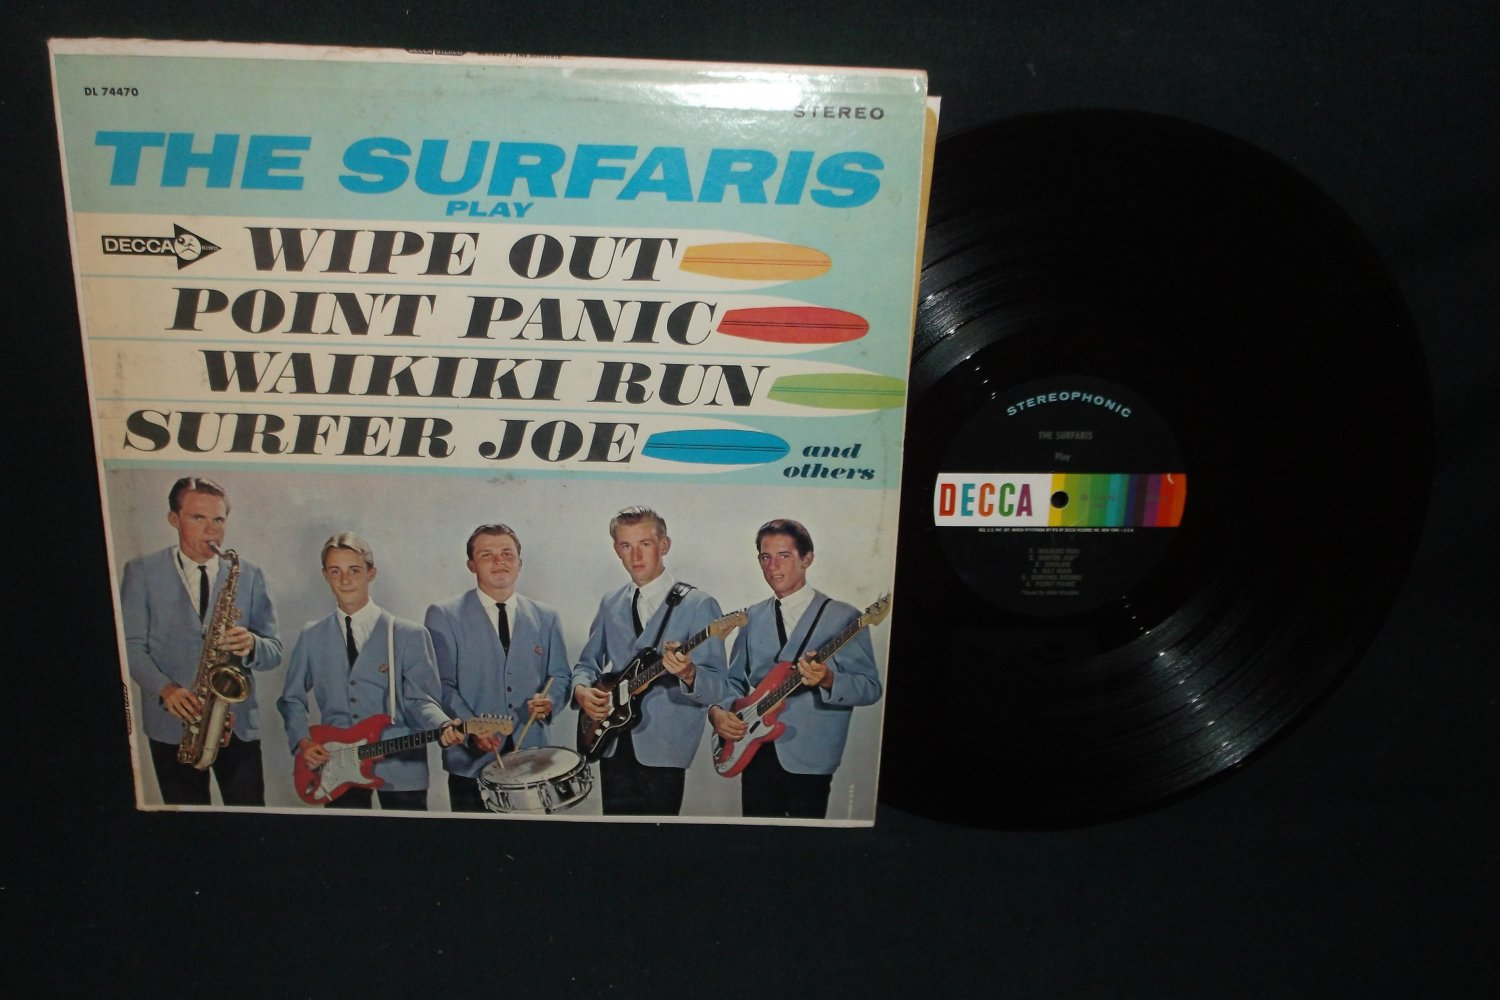 The Surfaris - Play Wipe Out And Others - DECCA 74470 - Rock LP